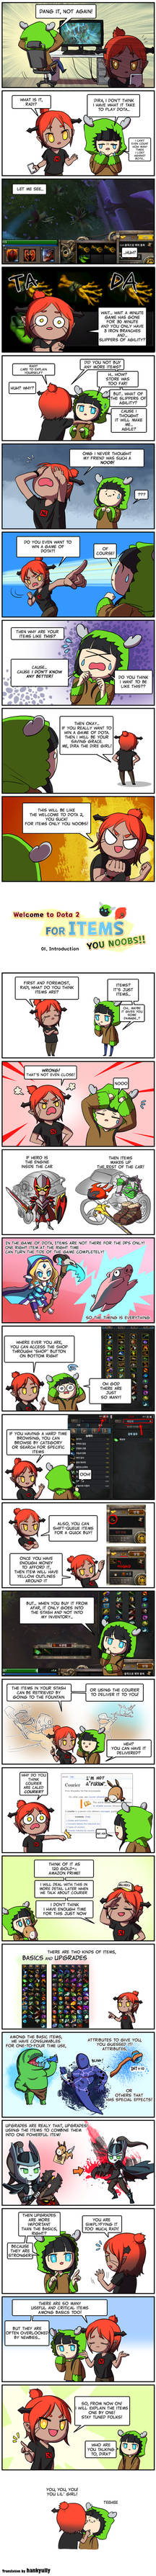 Welcome to Dota 2 for ITEMS, you NOOB! - 01 by Ulsae on